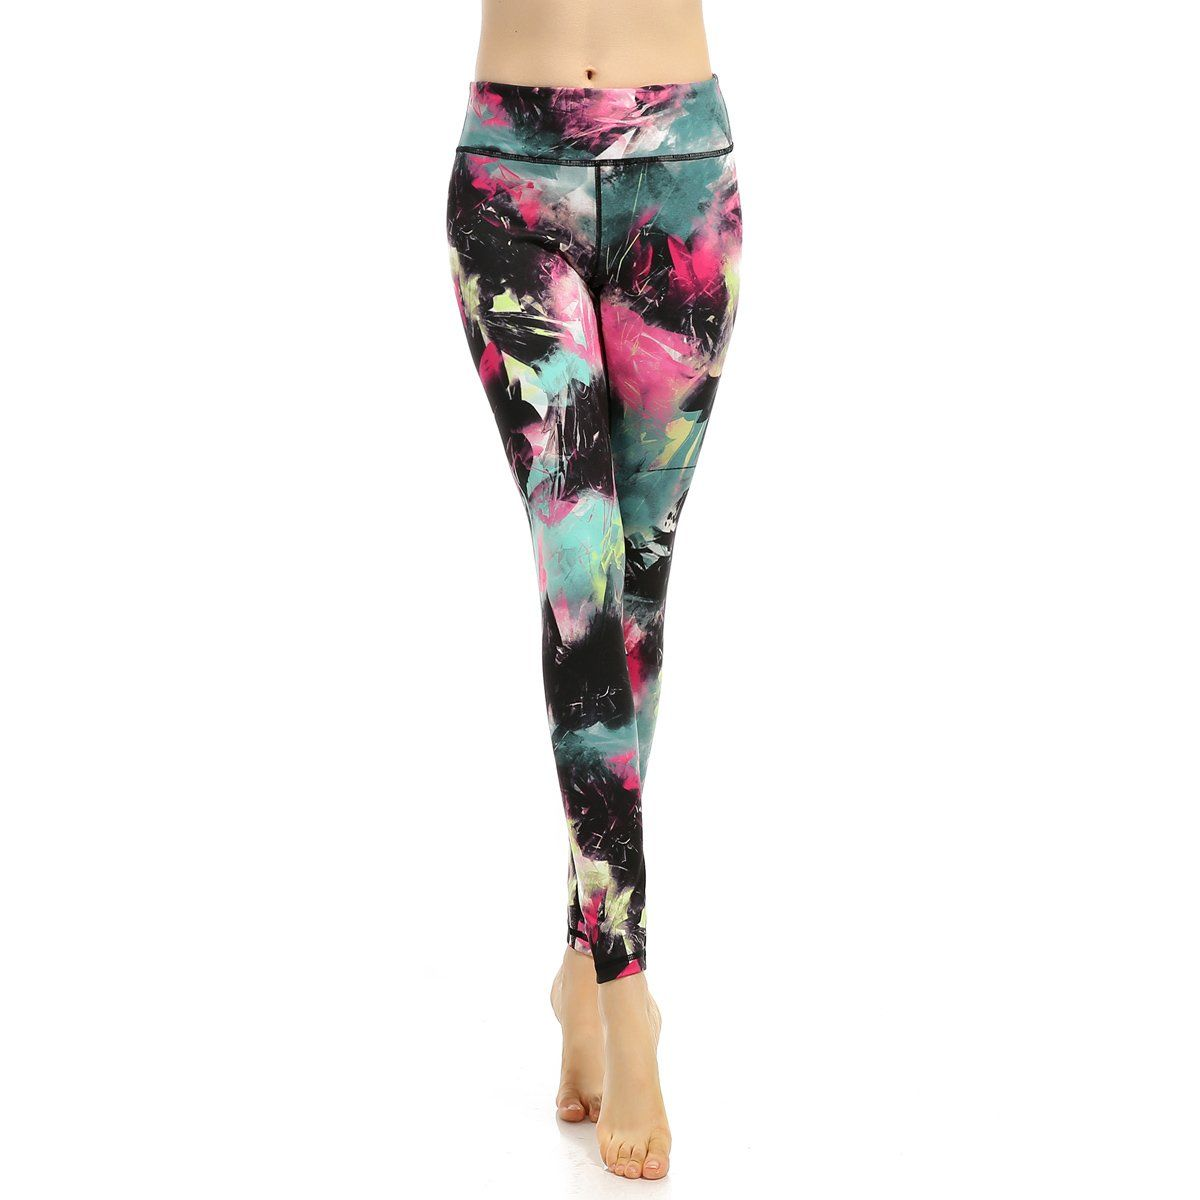 c880afaf83aab Women's Workout Leggings Printed Yoga Pants Active High Waist Gym Pants(XL,